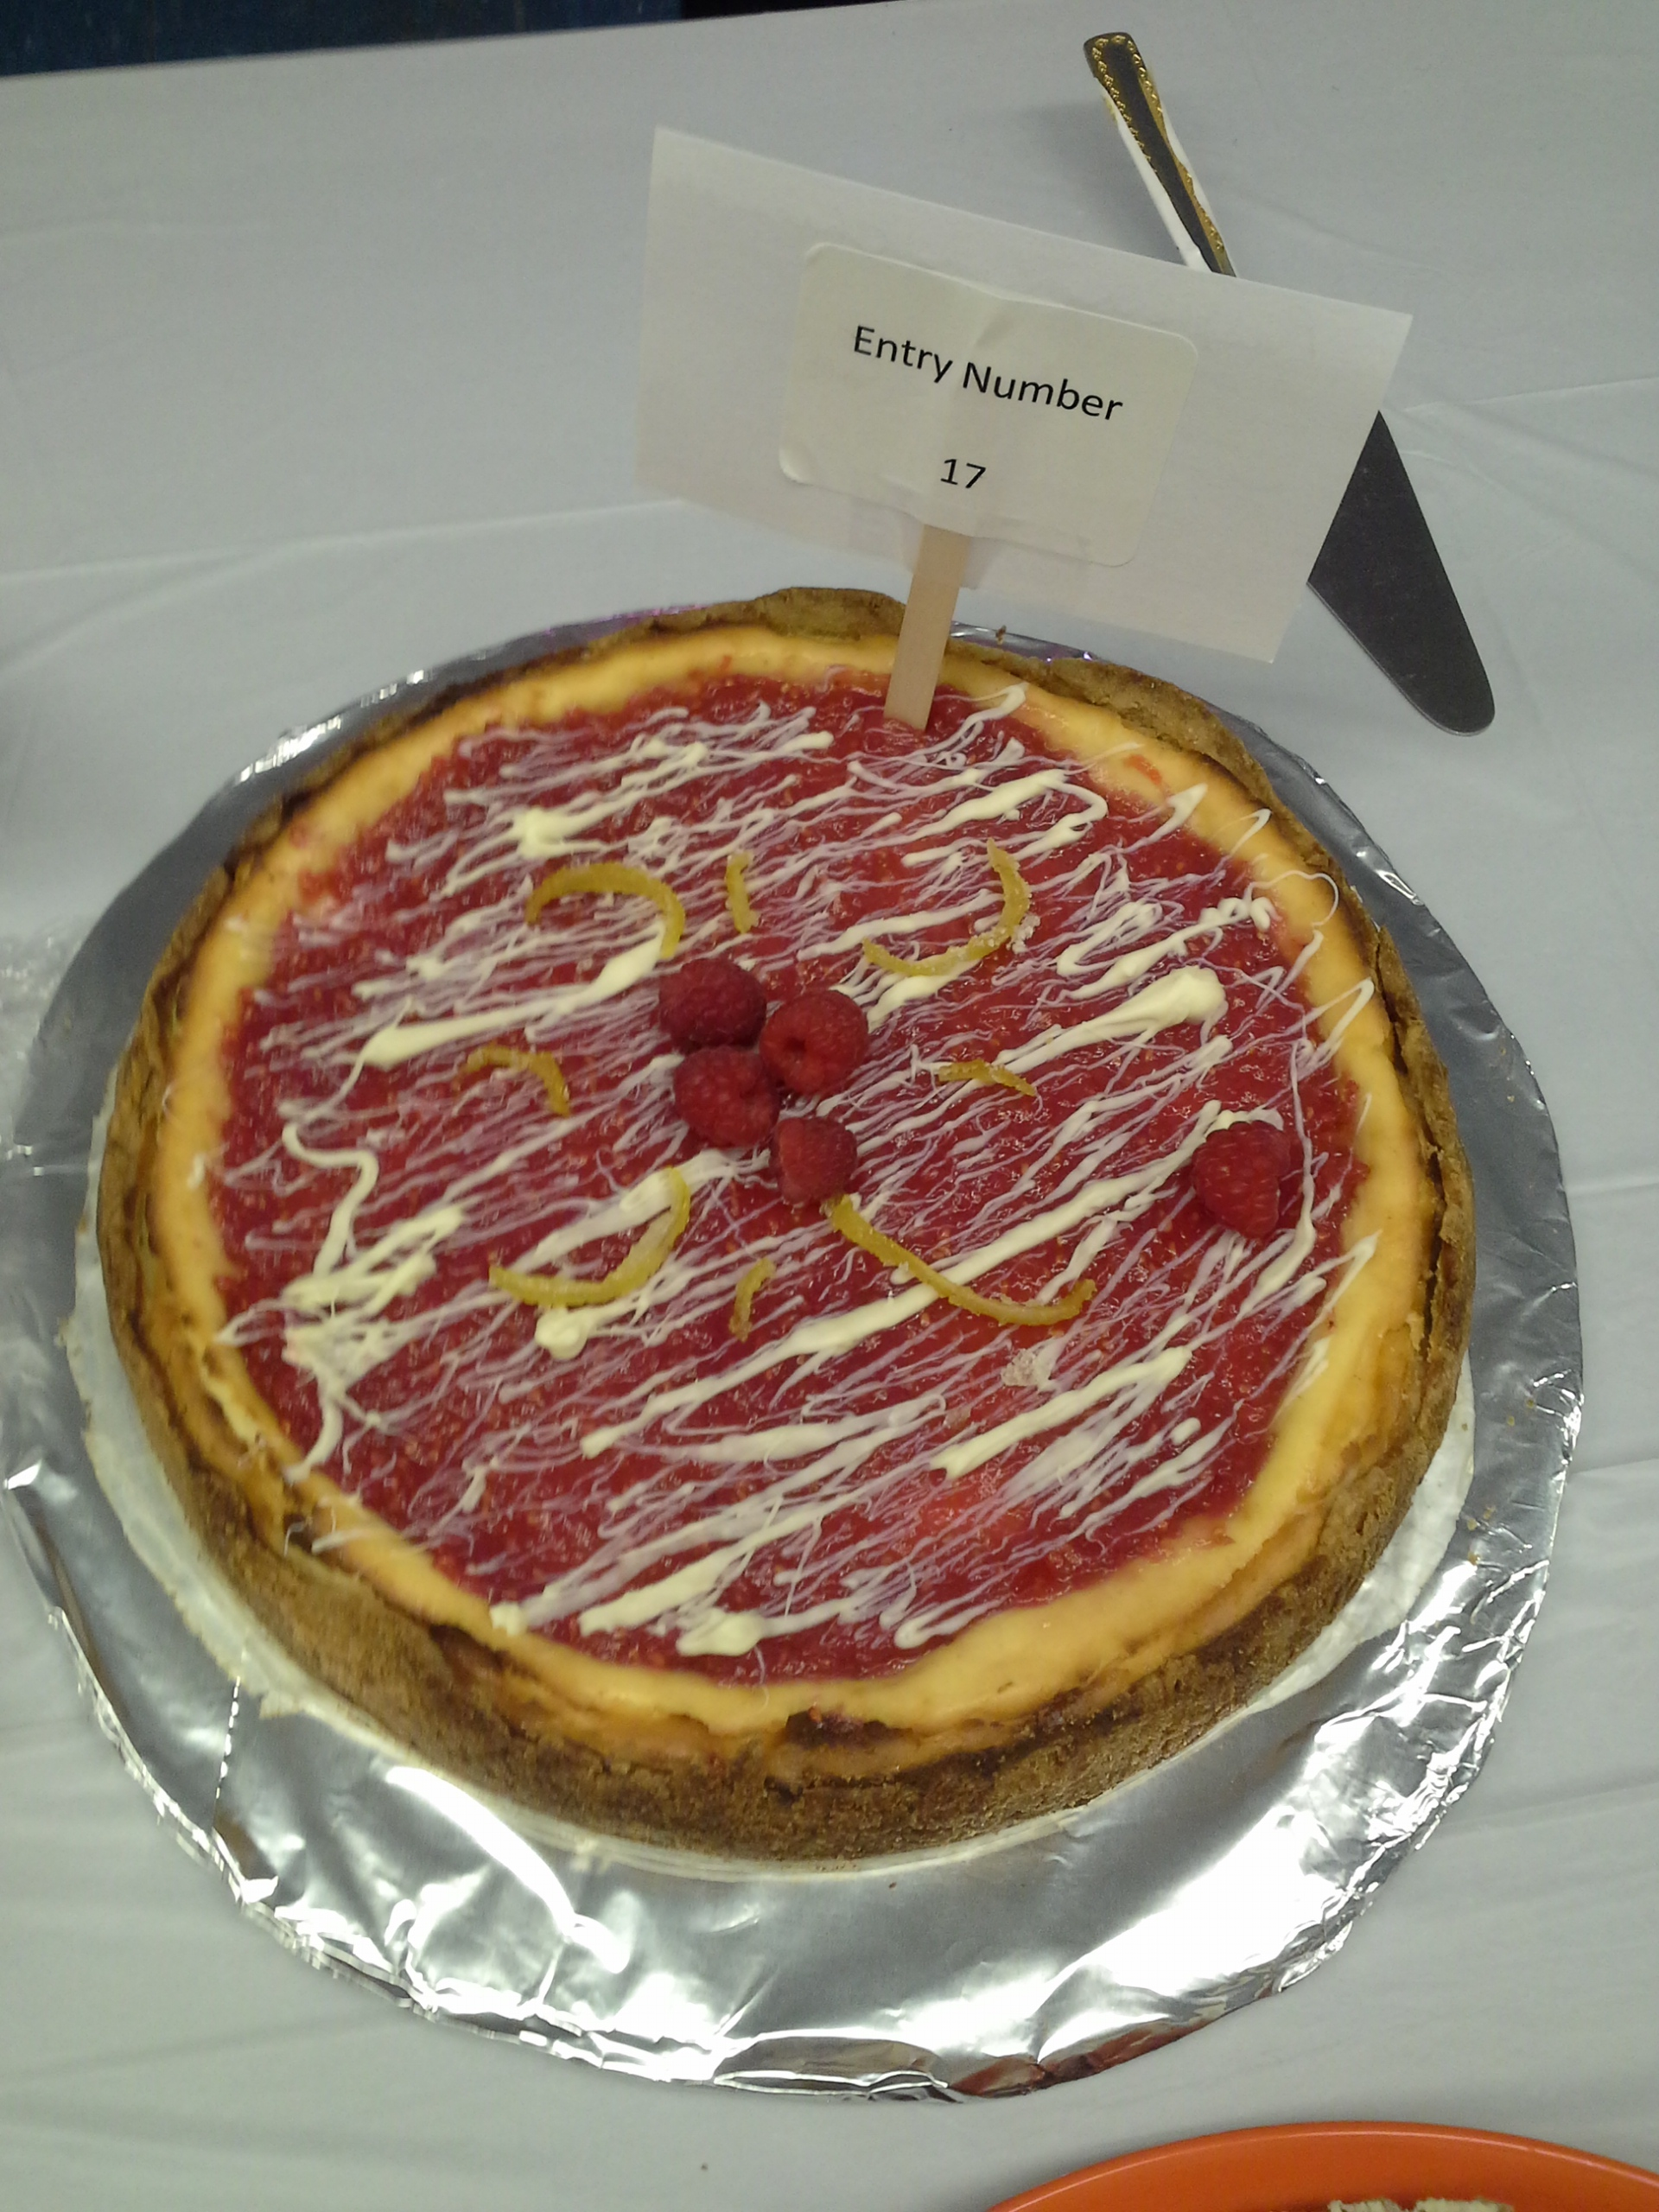 Last year's 3rd place cheesecake winner.